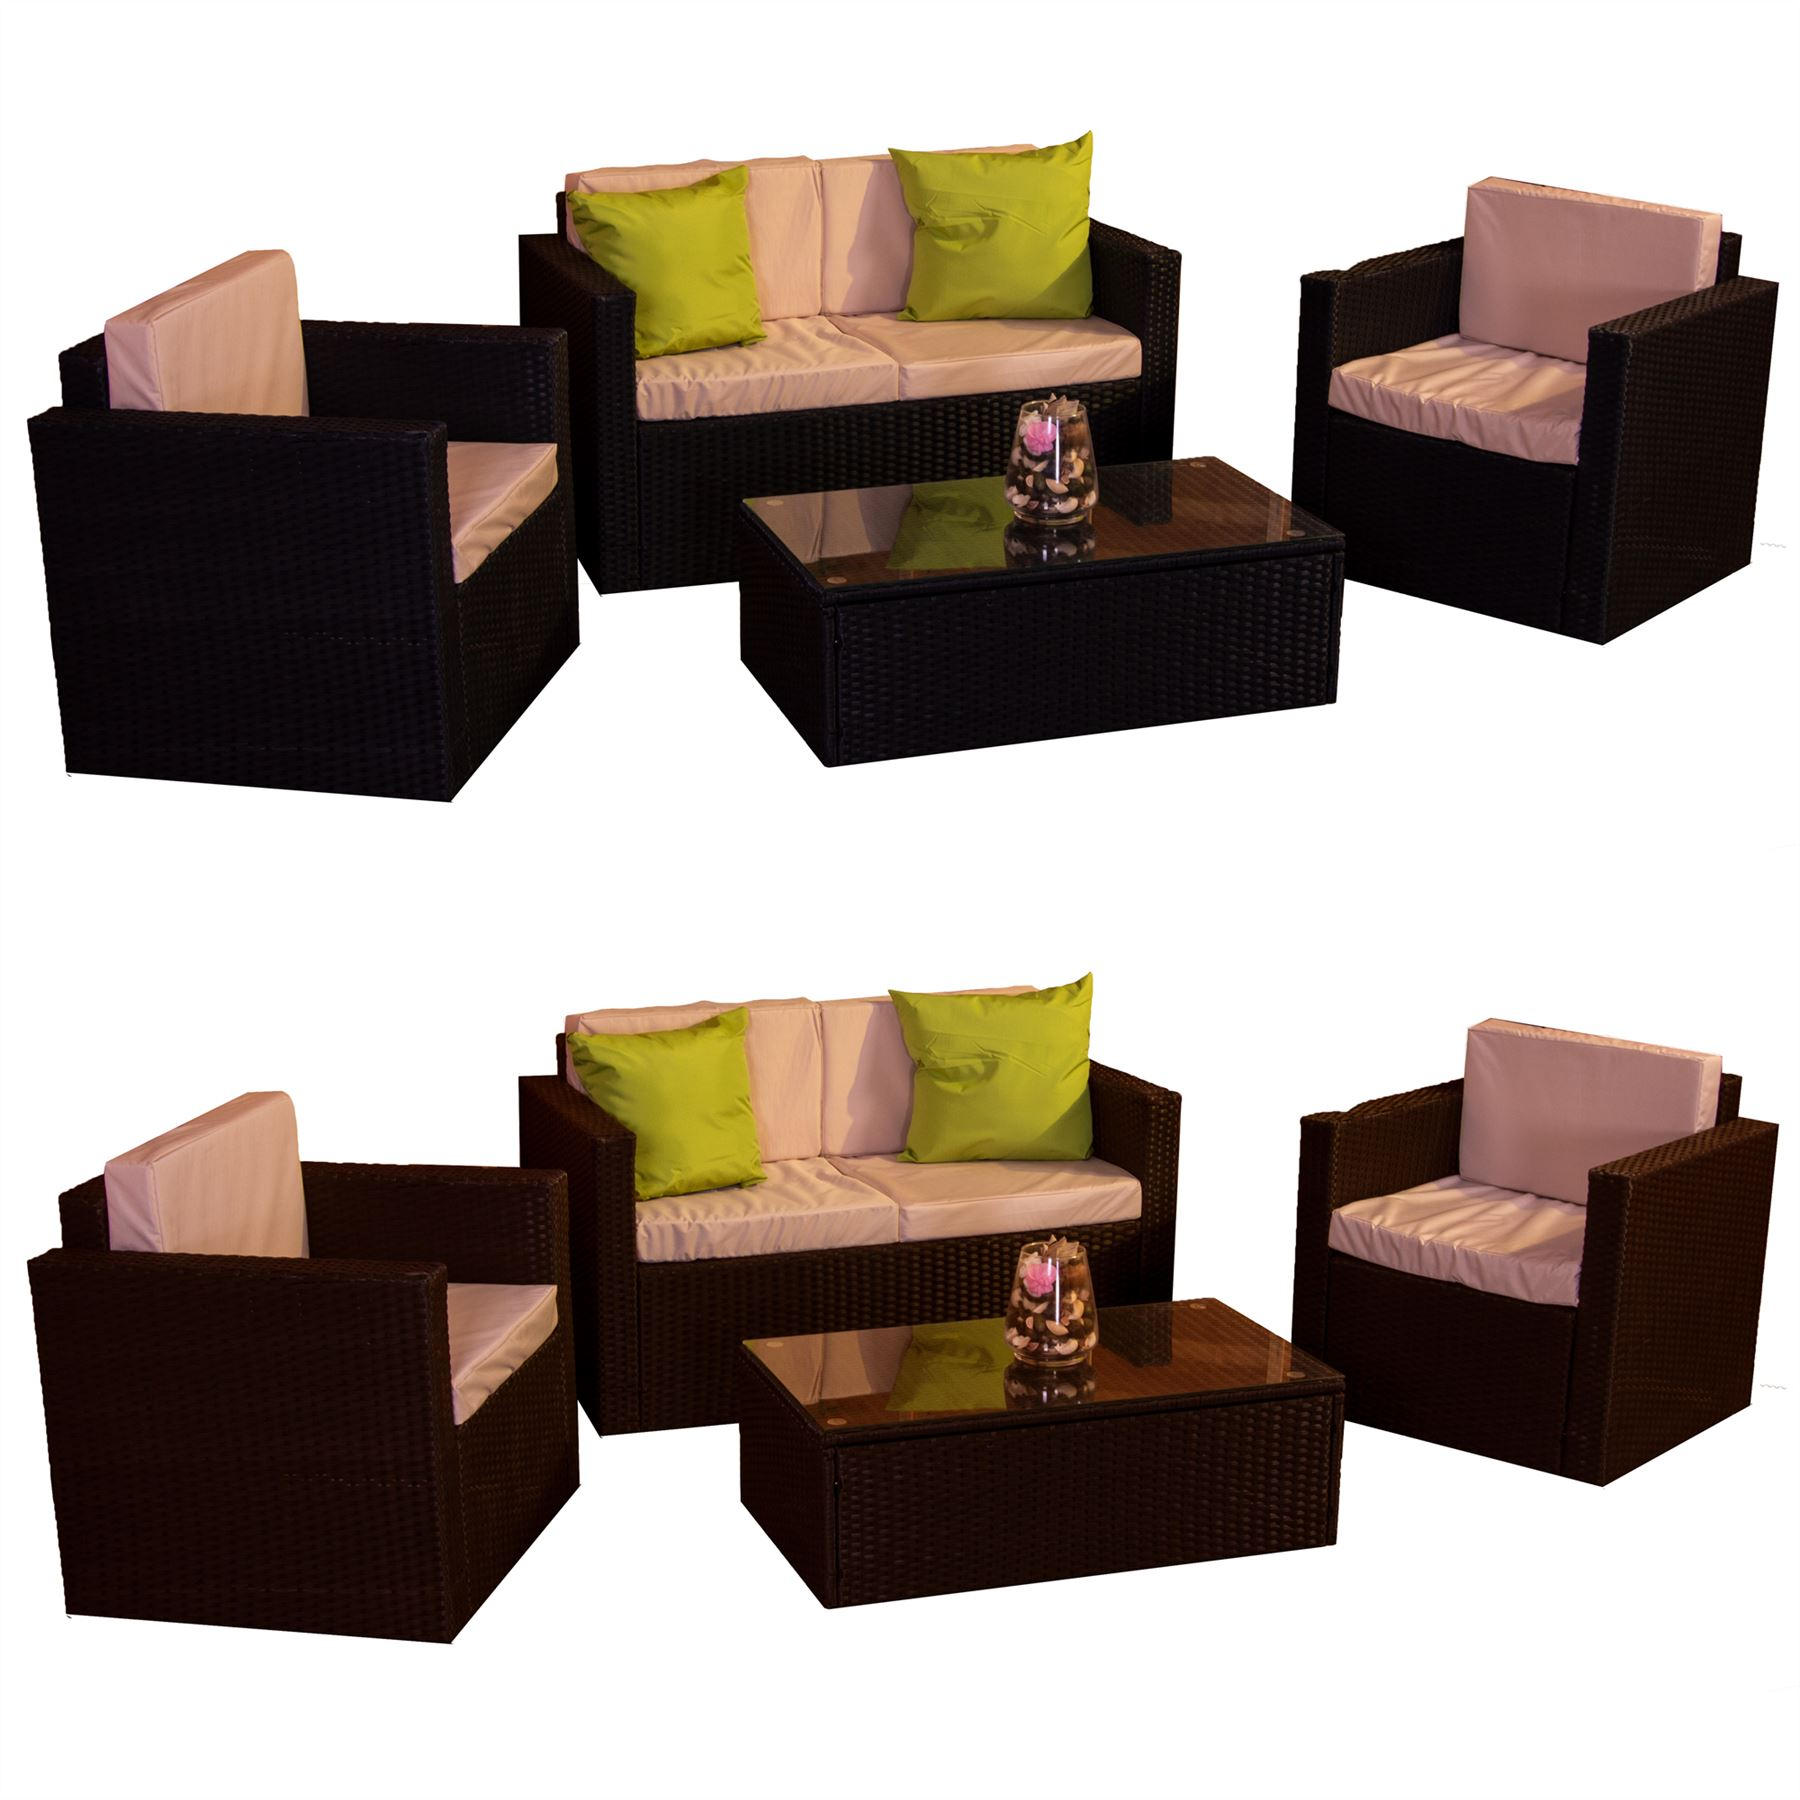 Details about alton garden rattan furniture 4 seater set black brown outdoor table patio ukfr